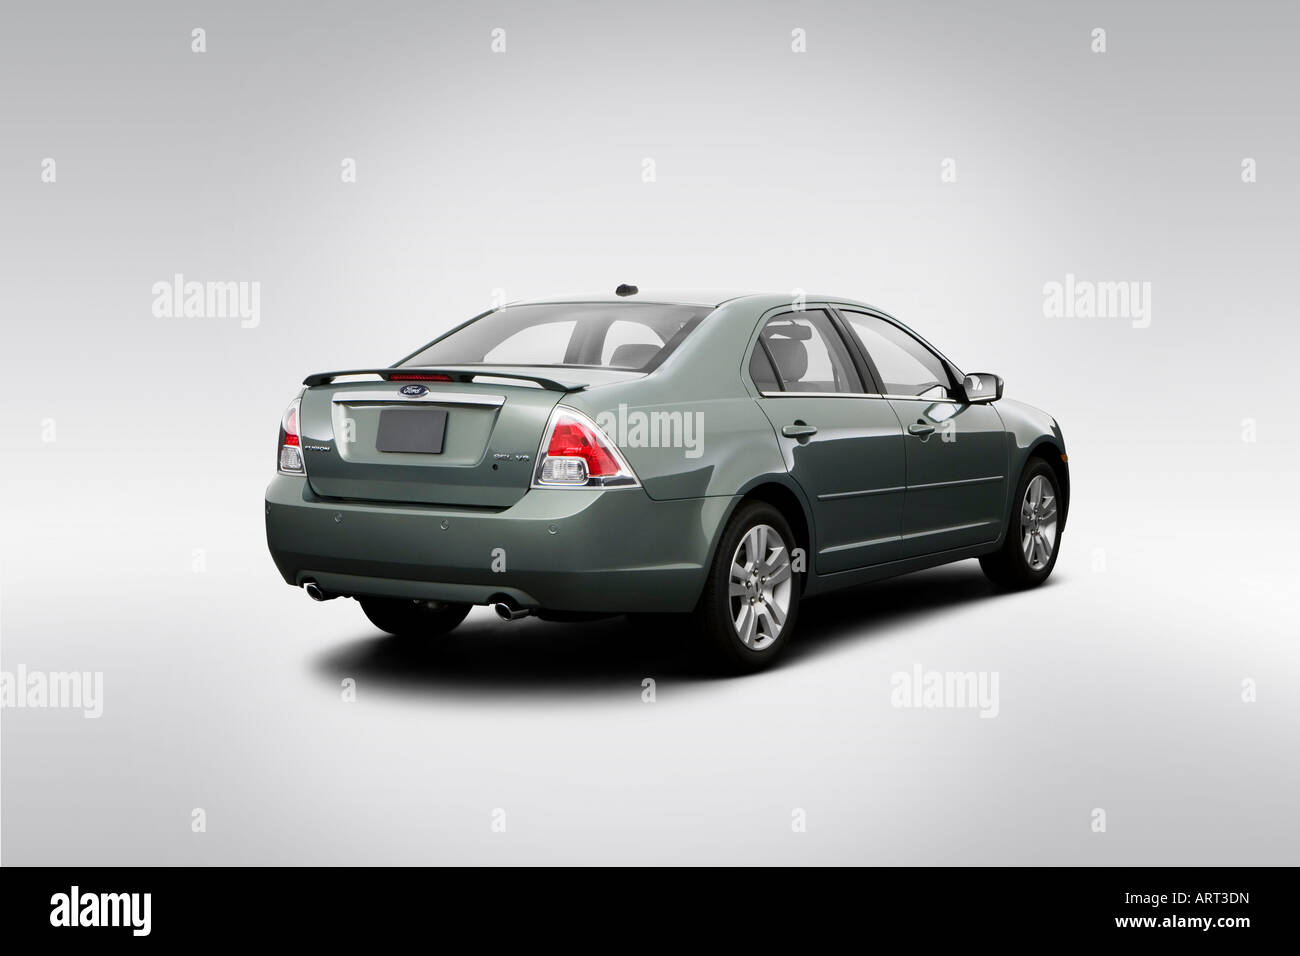 2008 Ford Fusion Sel In Green Rear Angle View Stock Photo Alamy